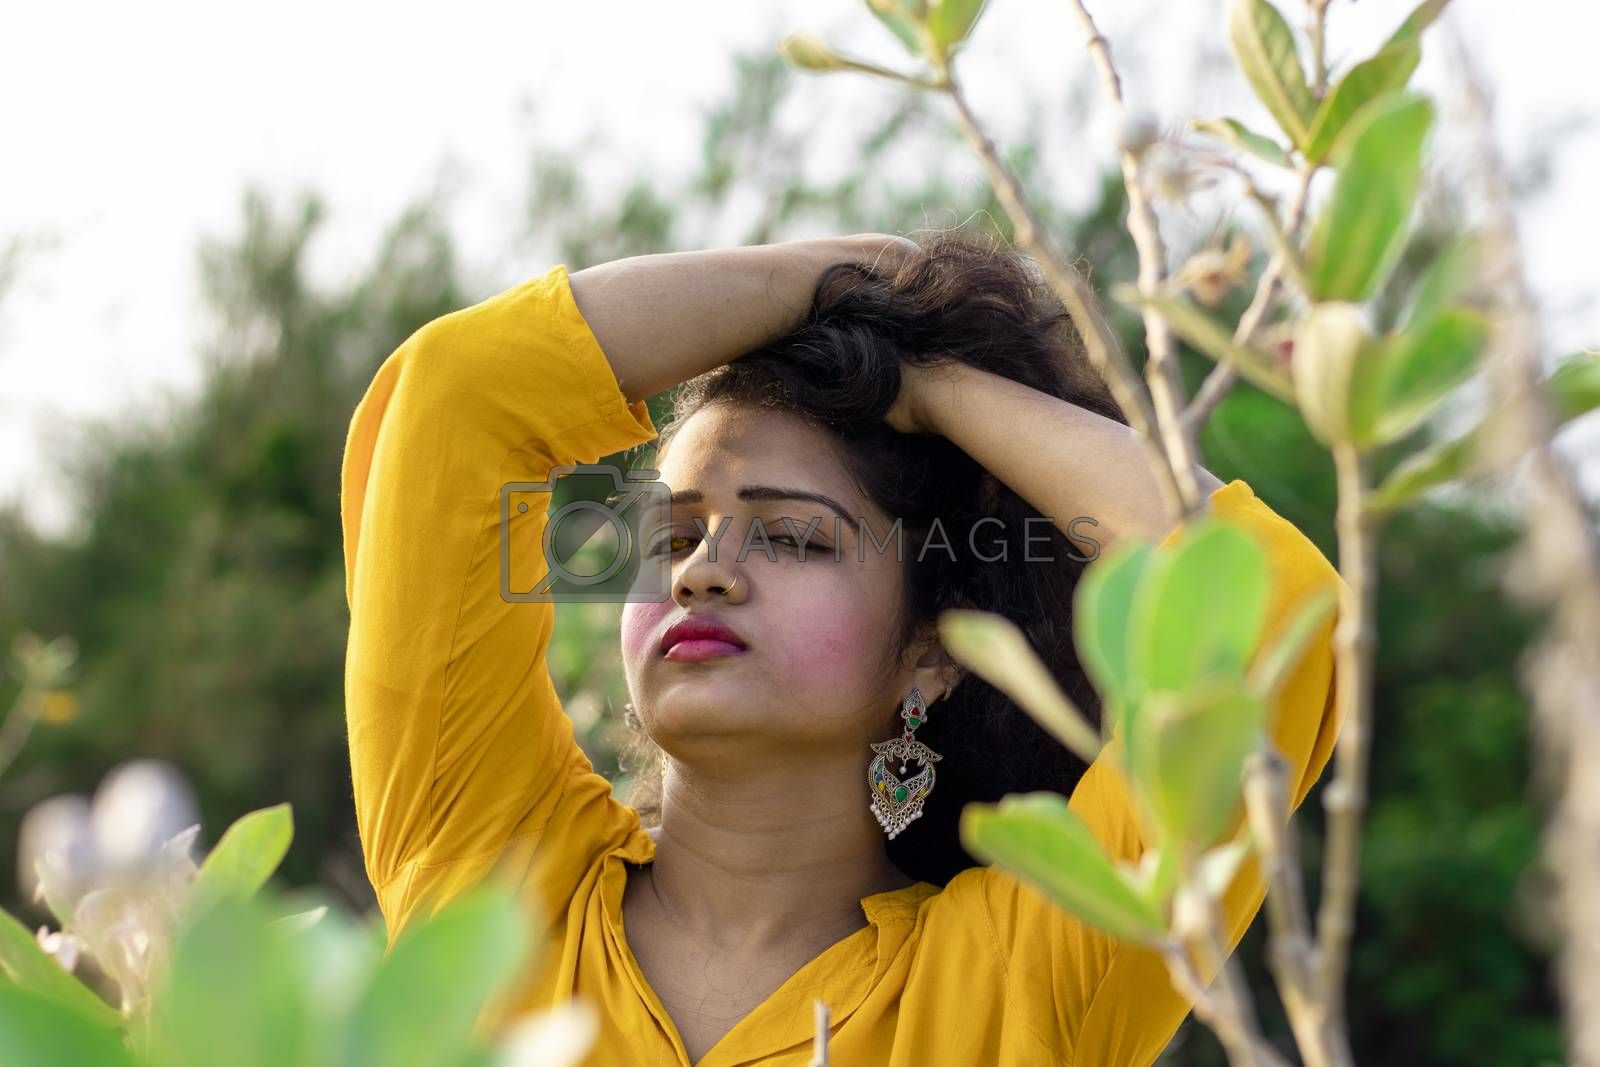 A beautiful Asian woman is standing near the tree of Aak, Madar (Calotropis gigantea) wearing a yellow top and holding black and long hair in her hands, elective focus points background,outdoors